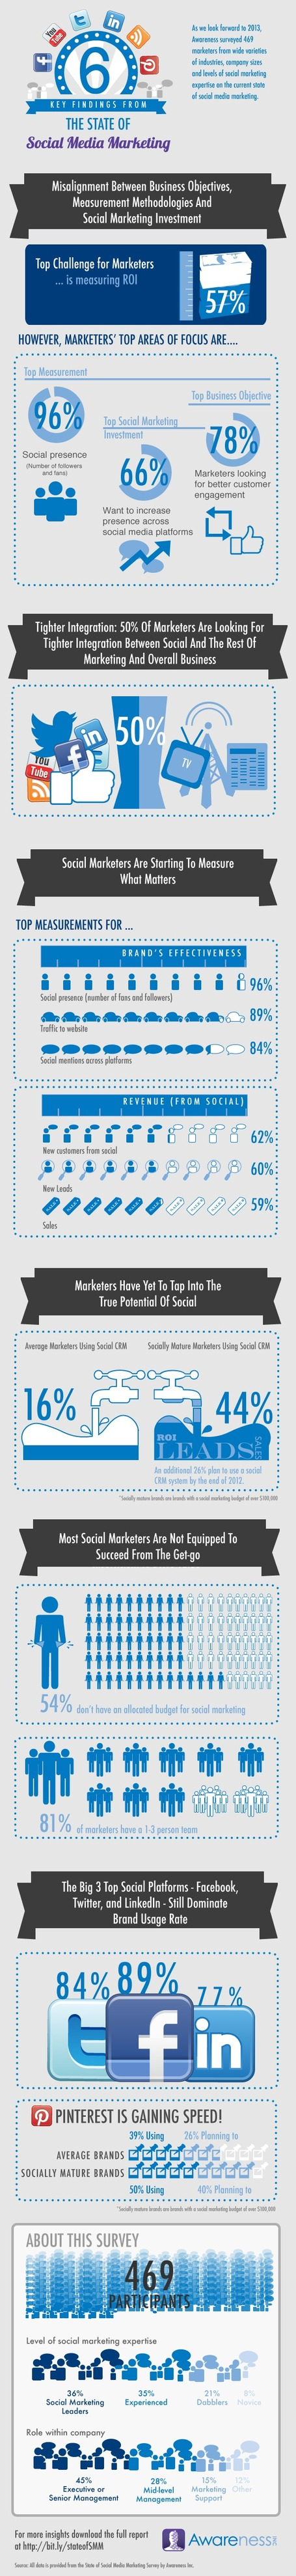 State of Social Marketing Survey [Infographic] focus on measurement | Content Curation for dummies | Scoop.it